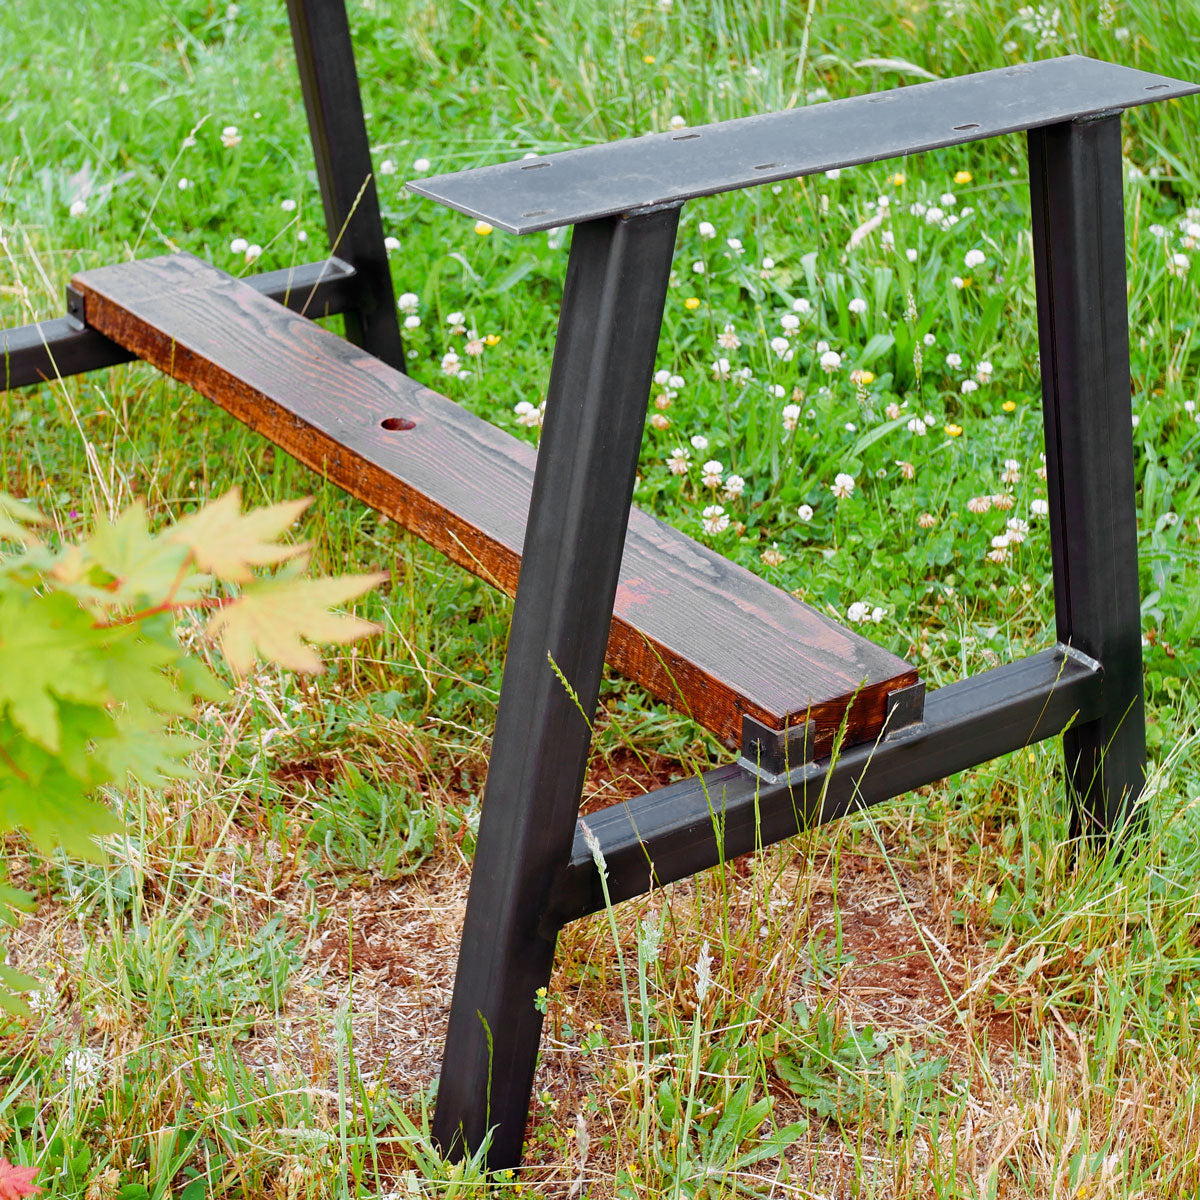 Timberline metal table base by Symmetry Hardware - 'Industrial Dark'